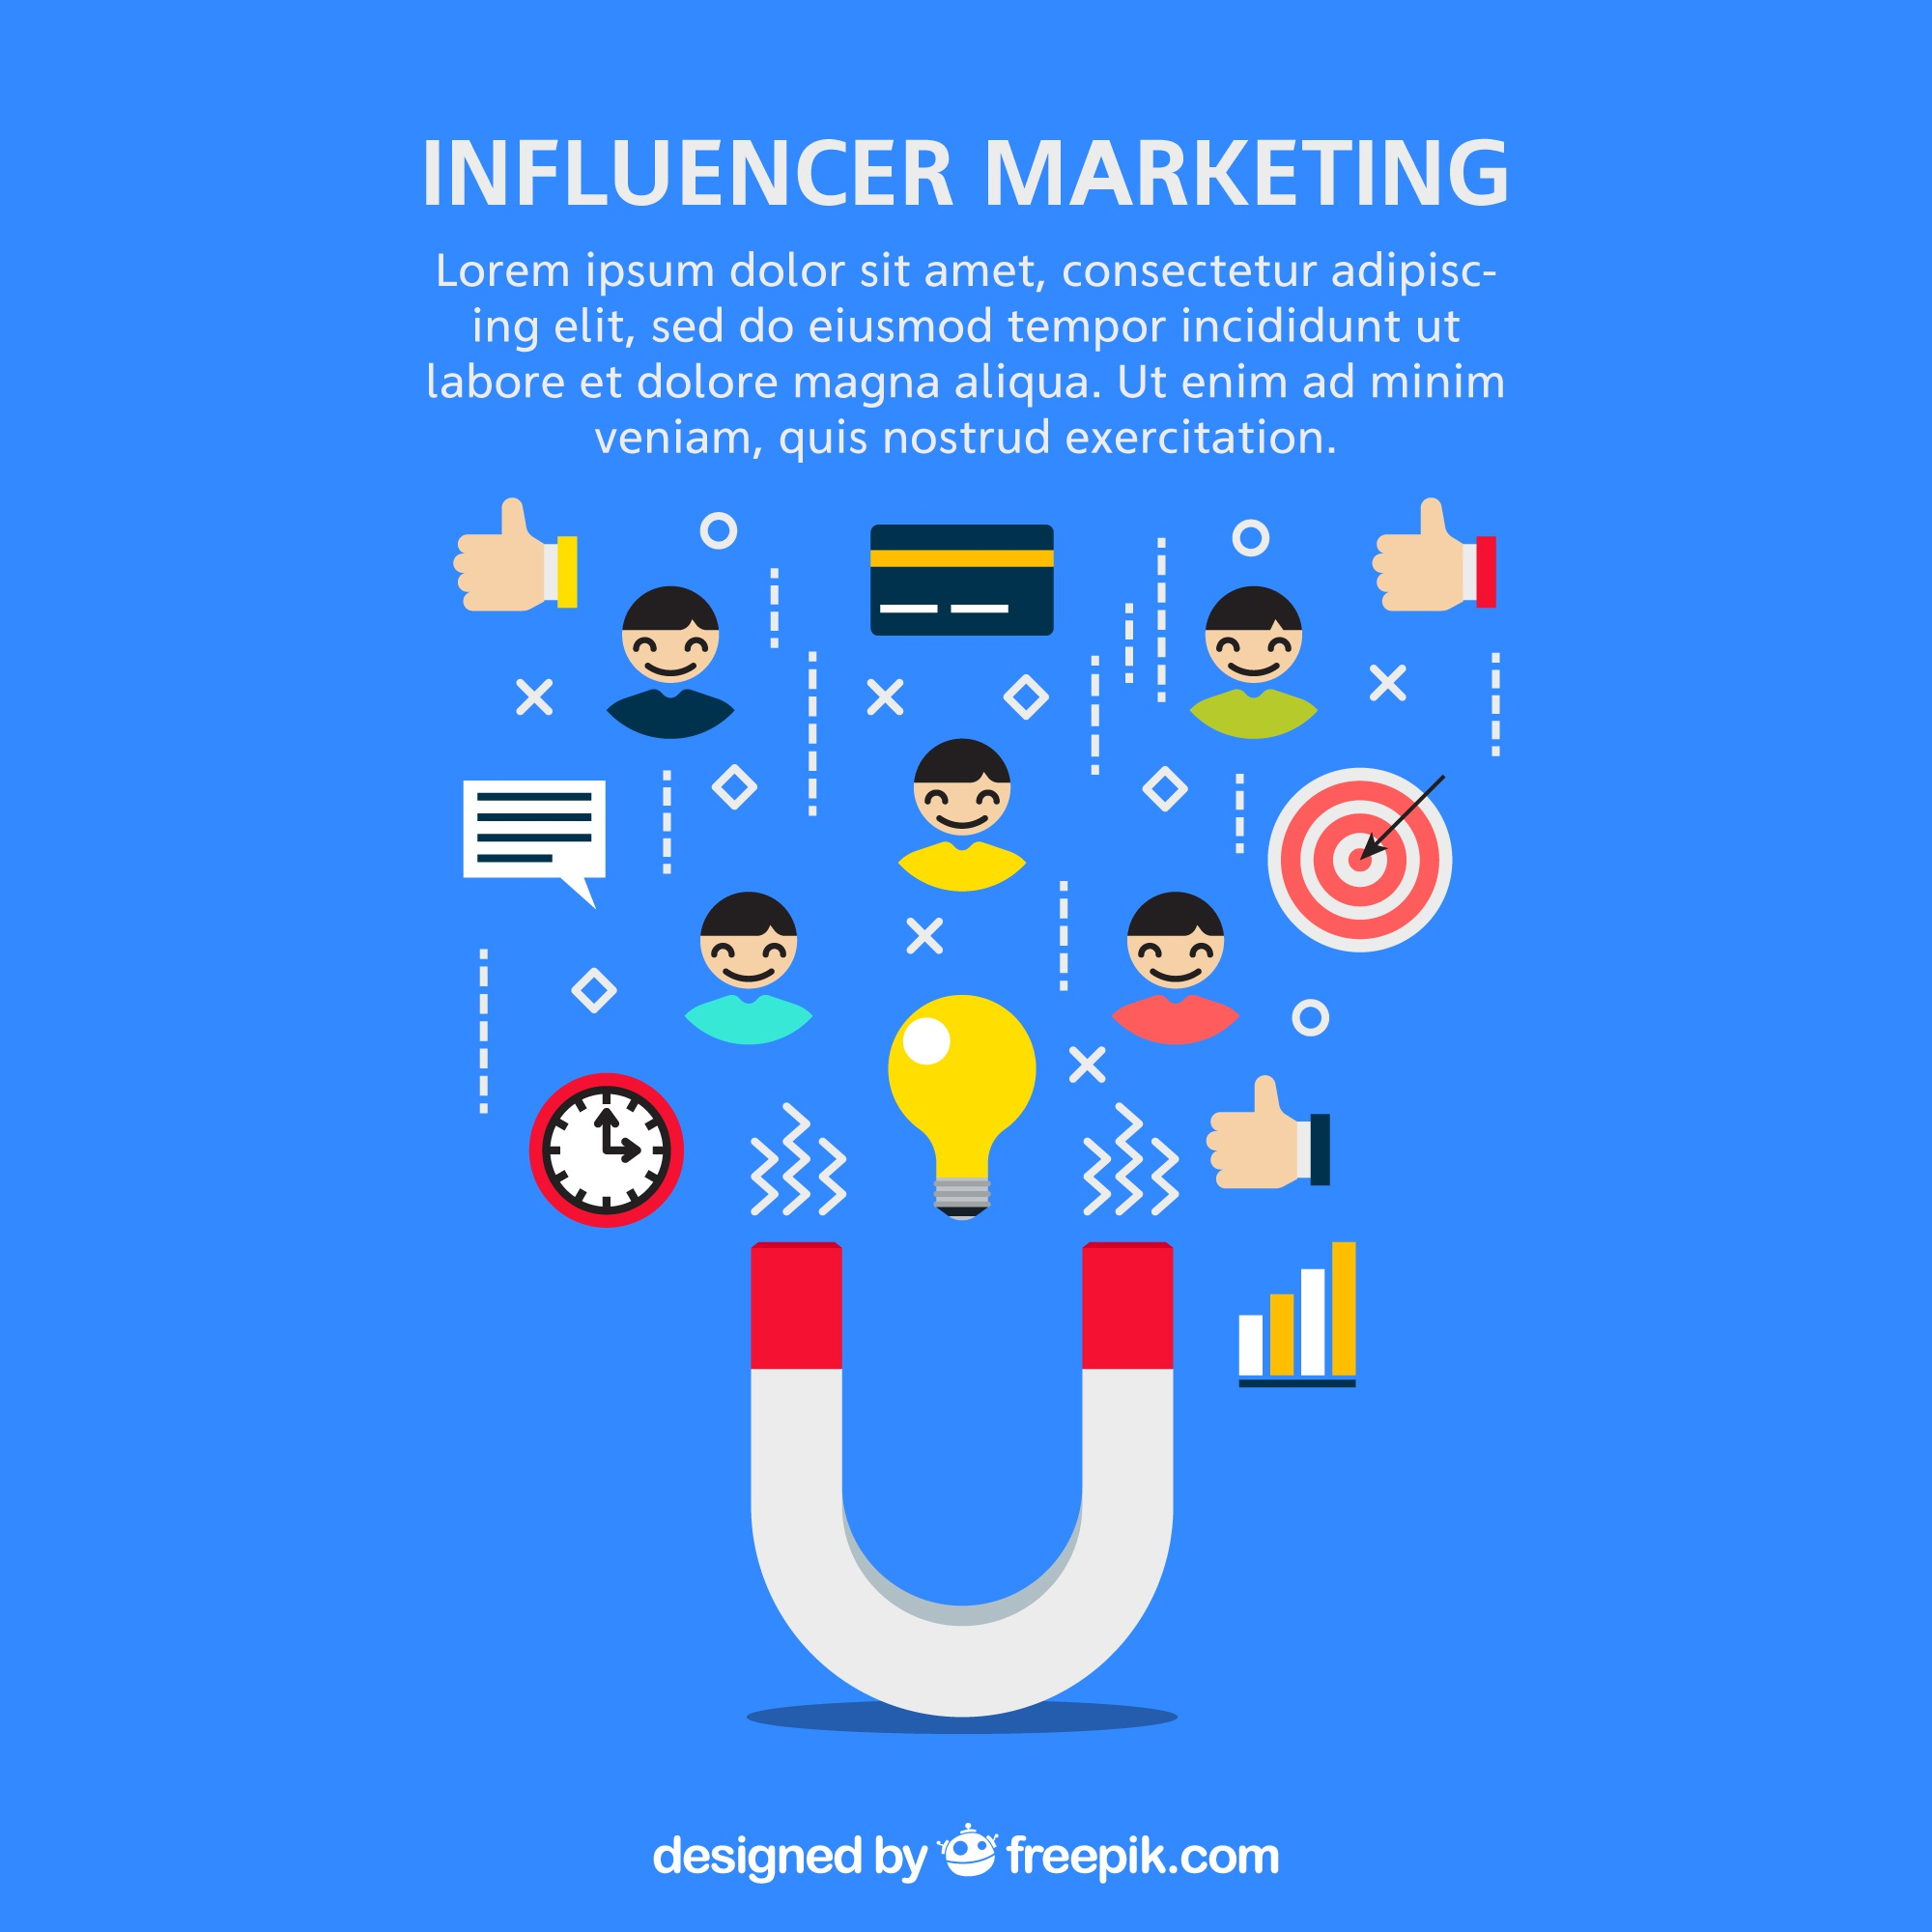 Vector de marketing Influencer com ímã e símbolos